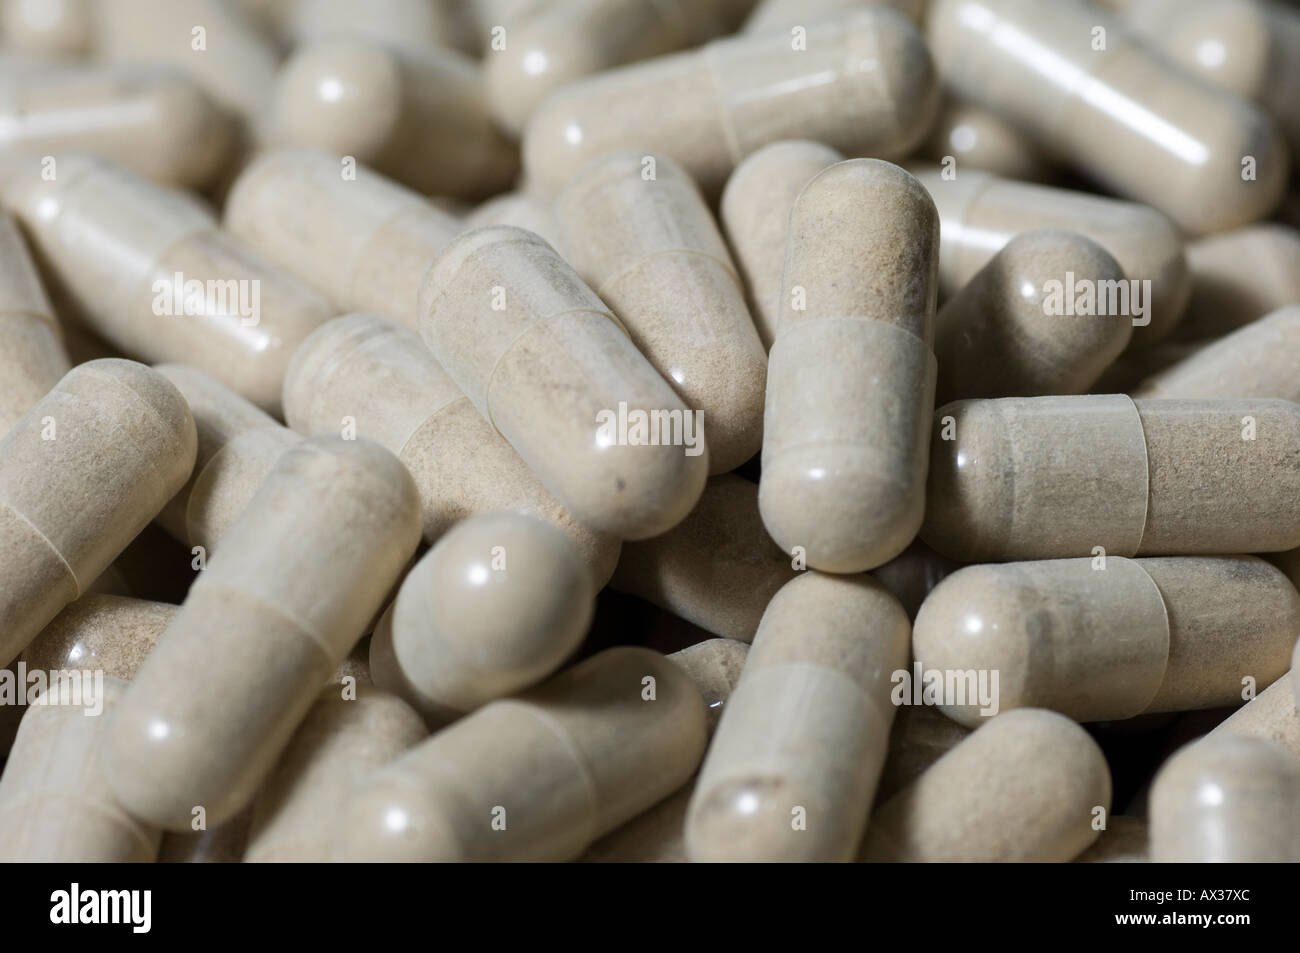 close up of white pills - Stock Image